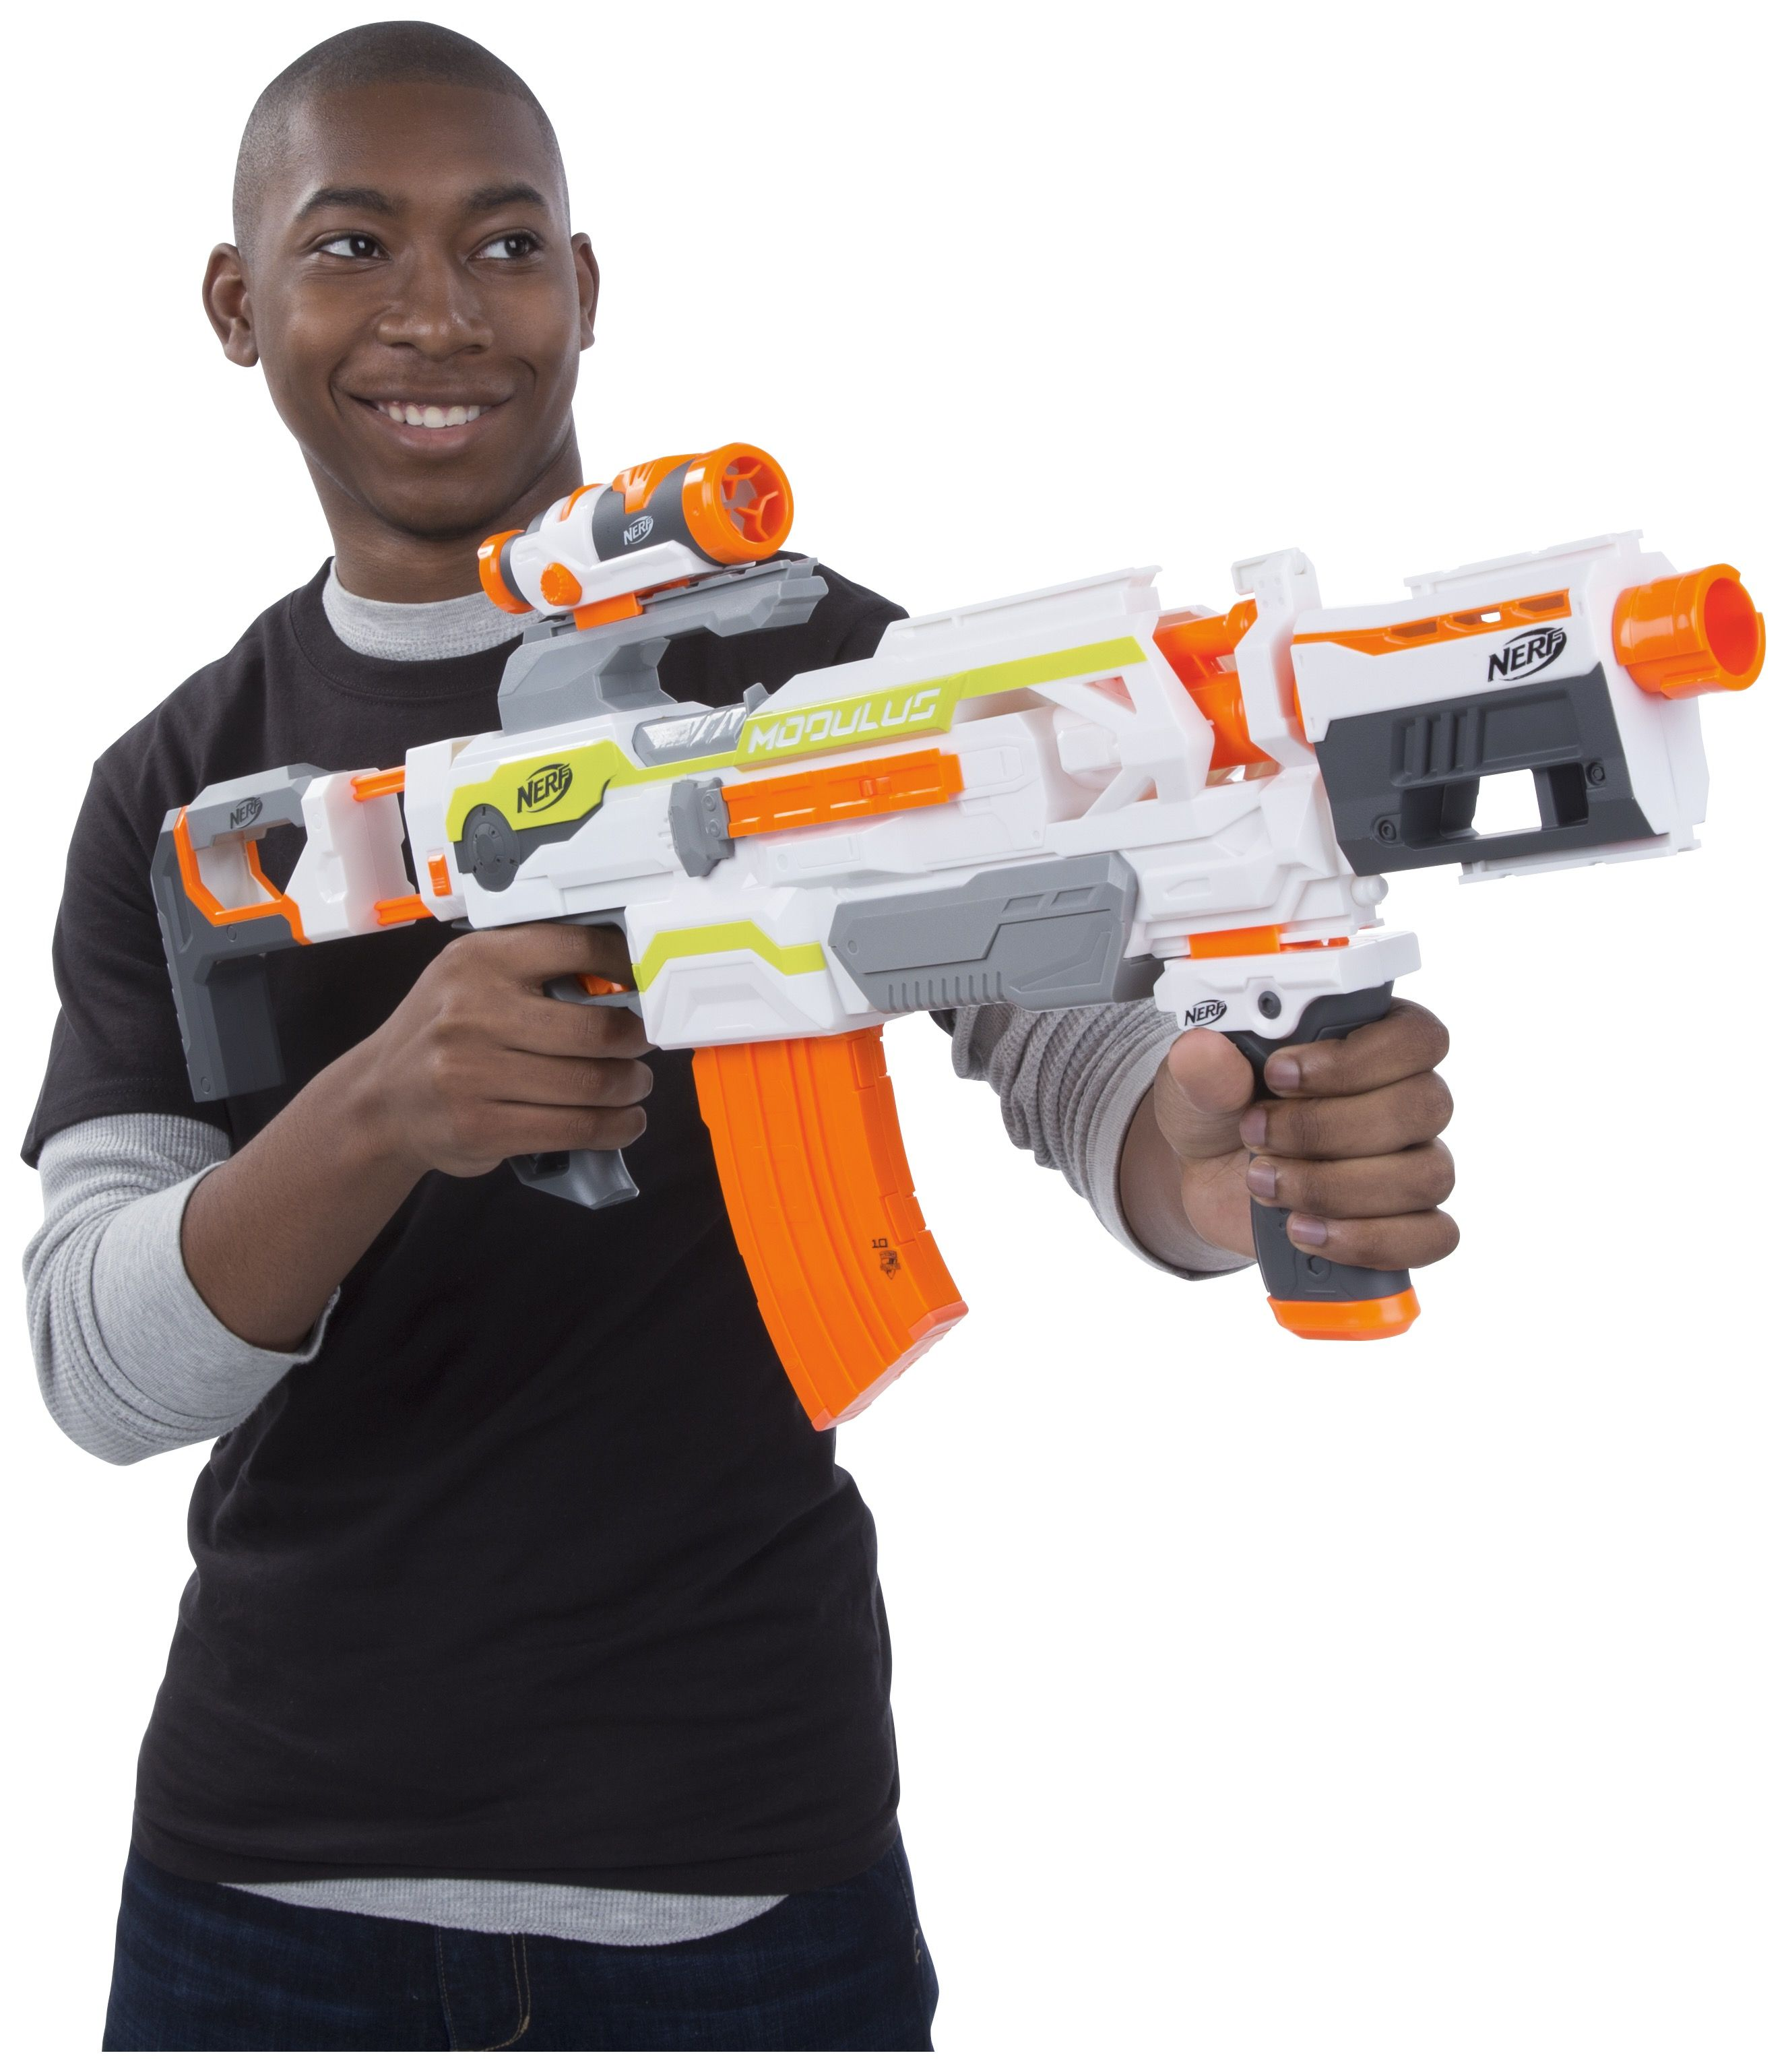 Create your own battle field with the nerf modulus blaster